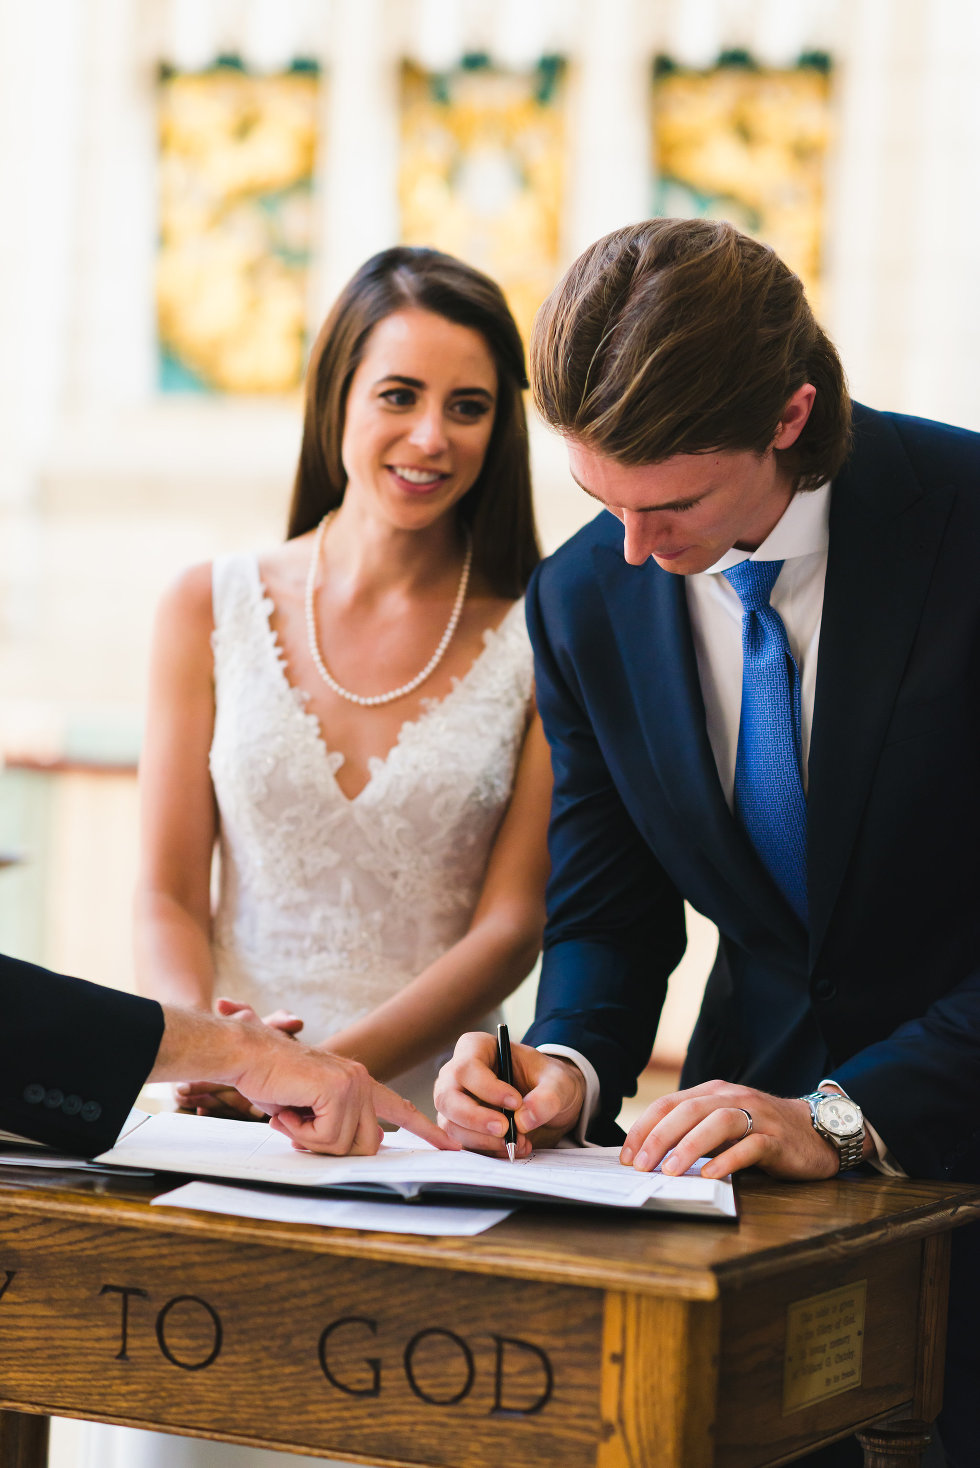 groom signing marriage certificate while bride watches him Toronto wedding photography